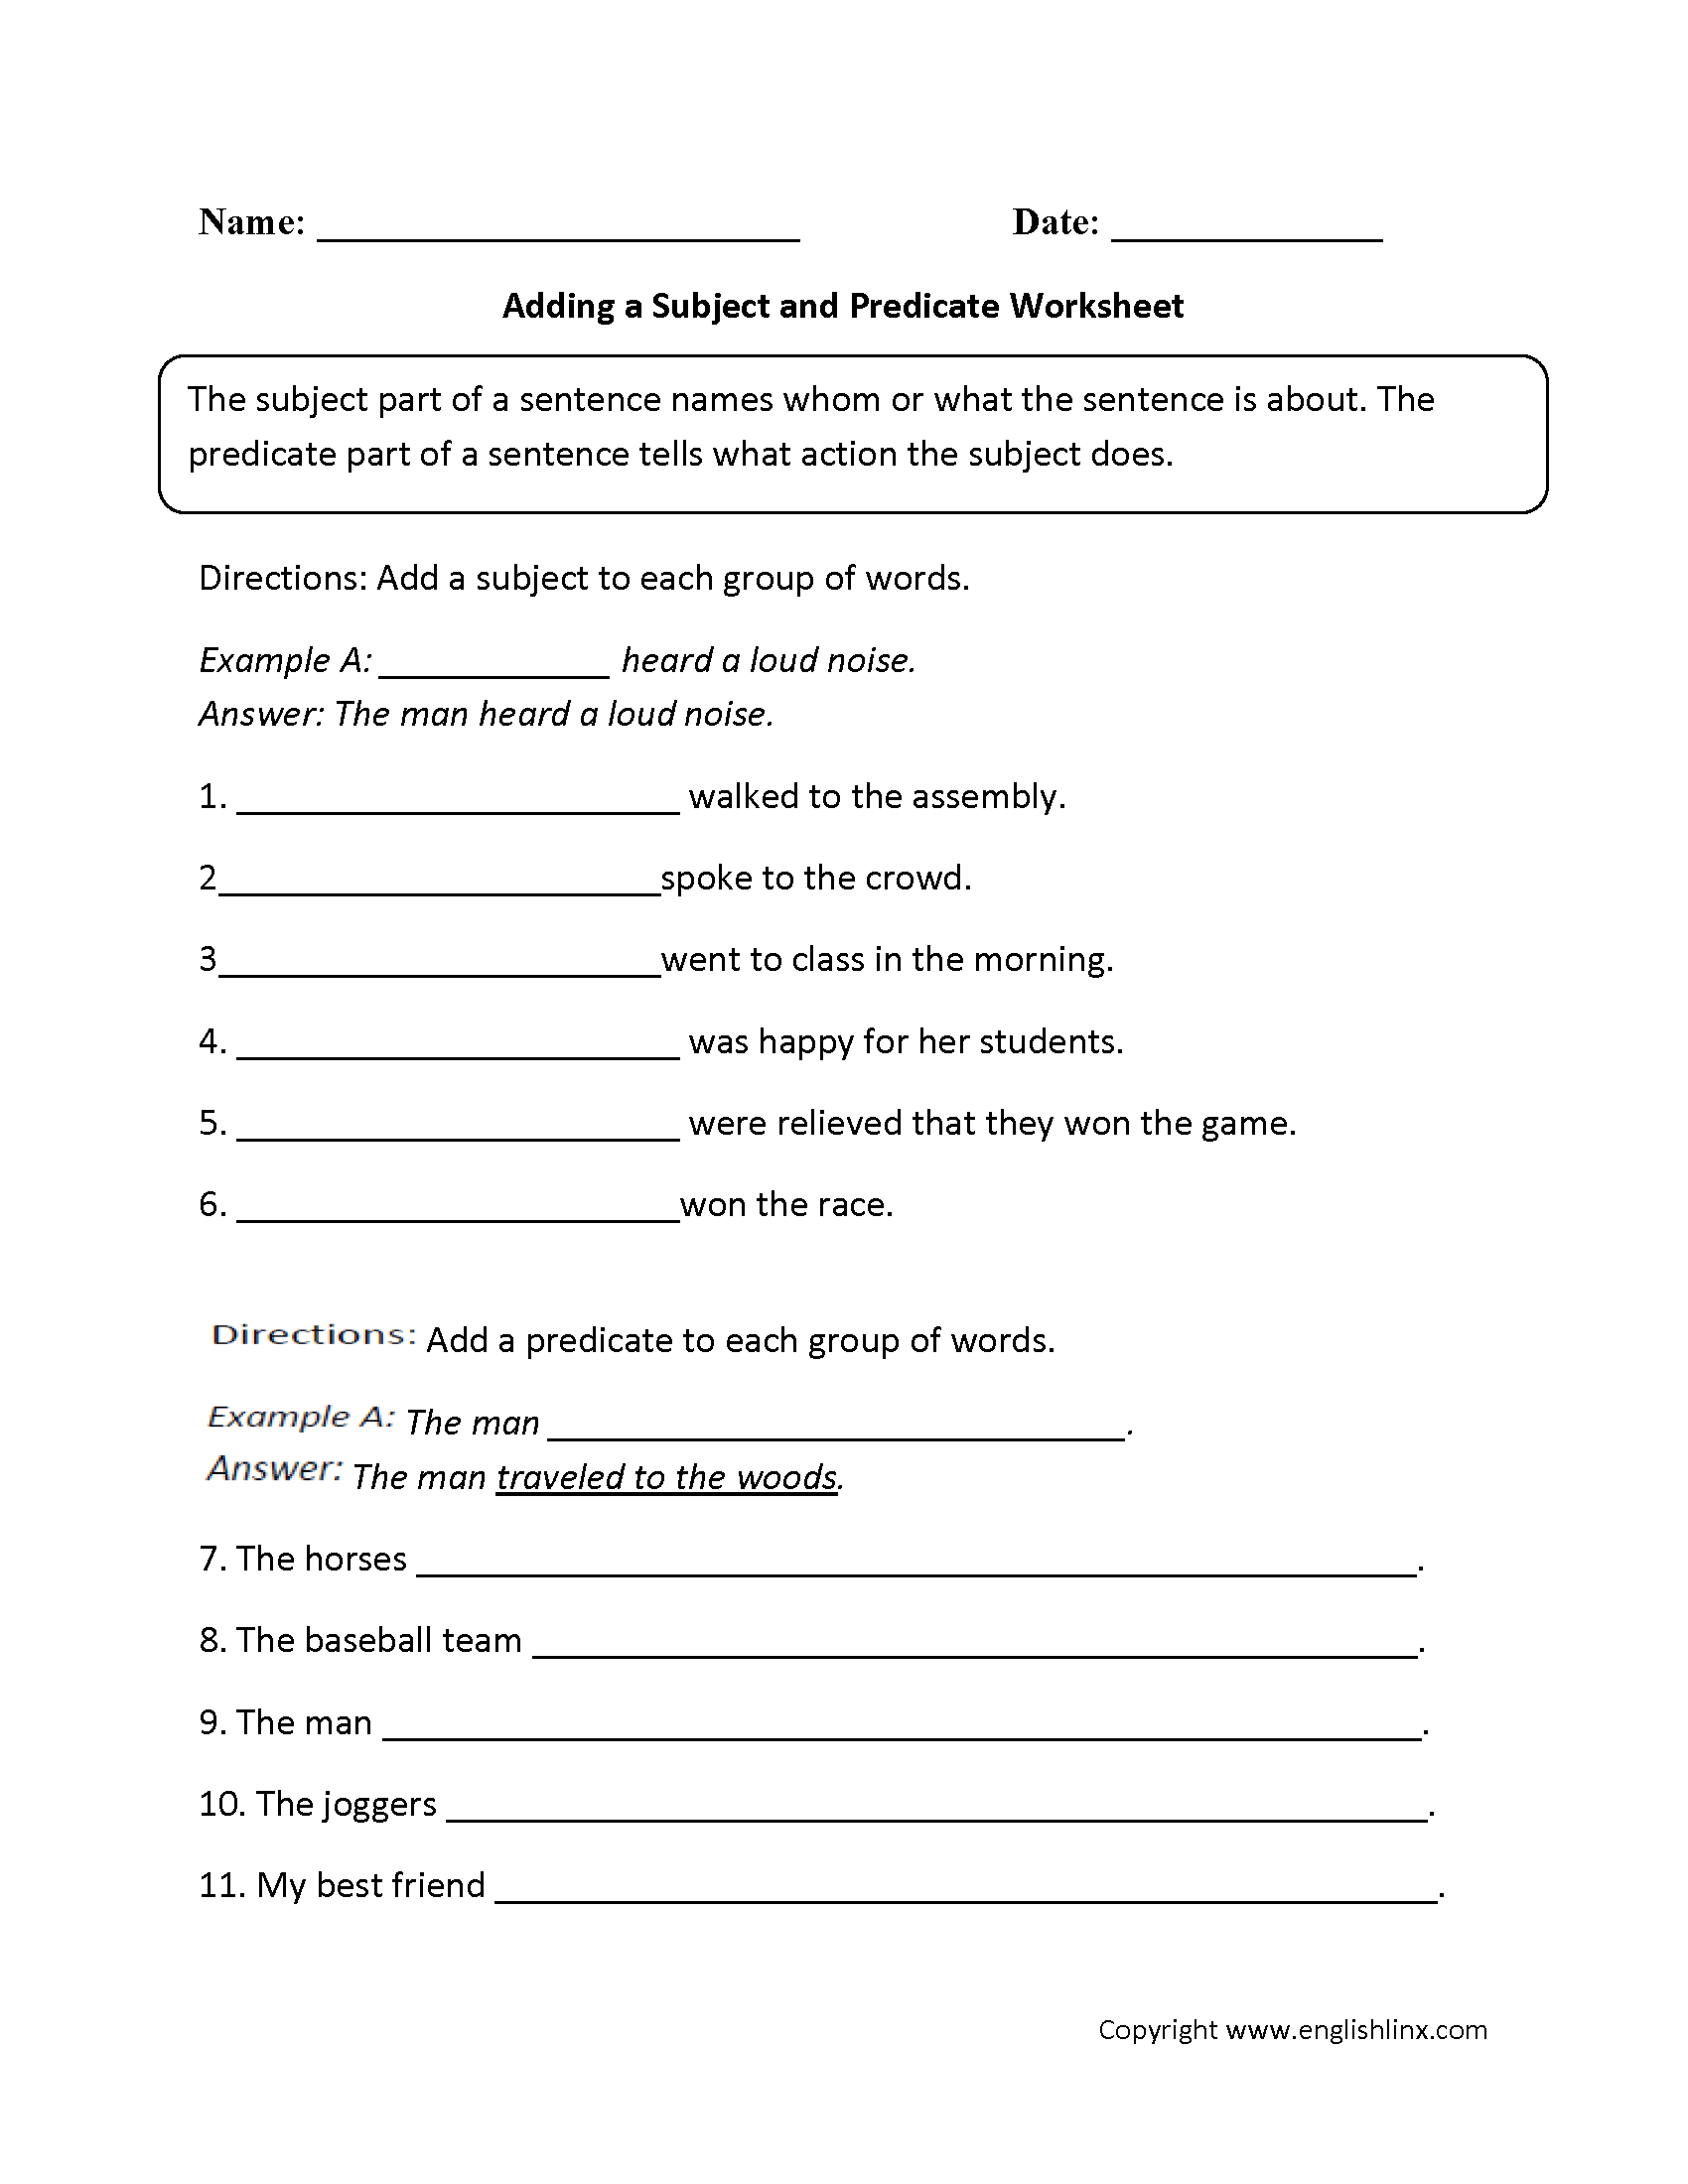 Englishlinx – Compound Subject and Predicate Worksheets